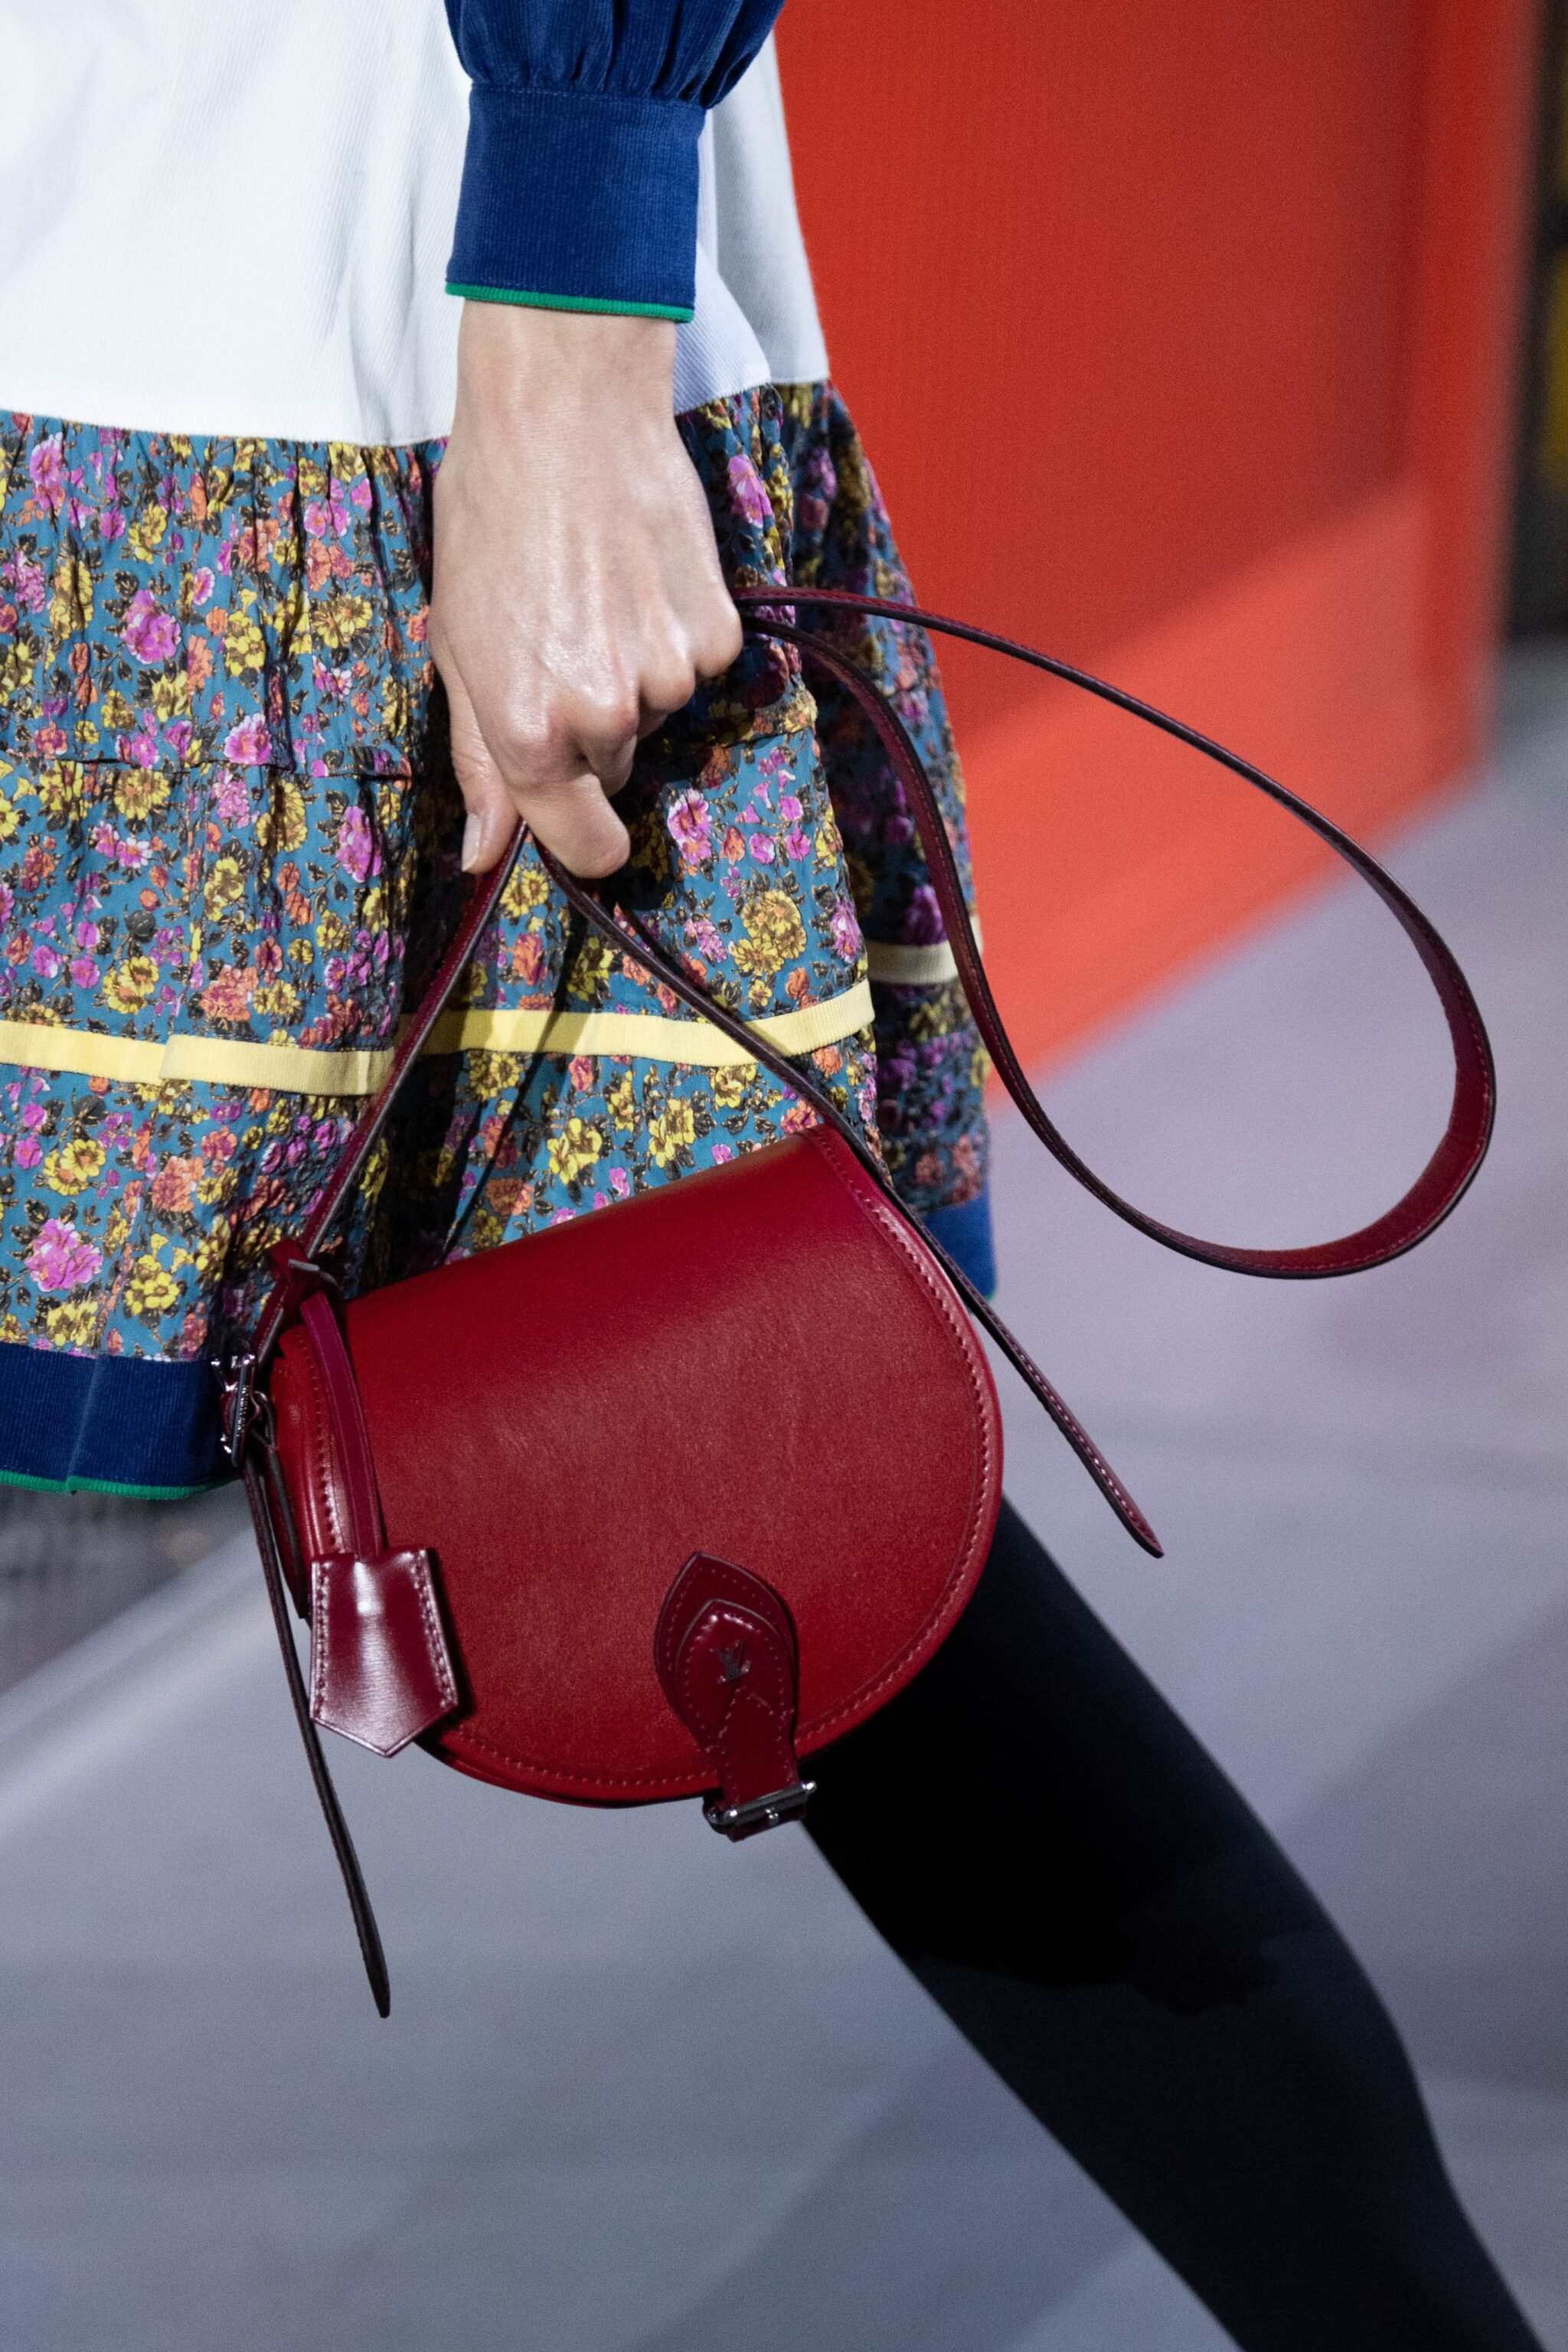 Louis Vuitton Fall Winter 2019 Runway Bag Collection